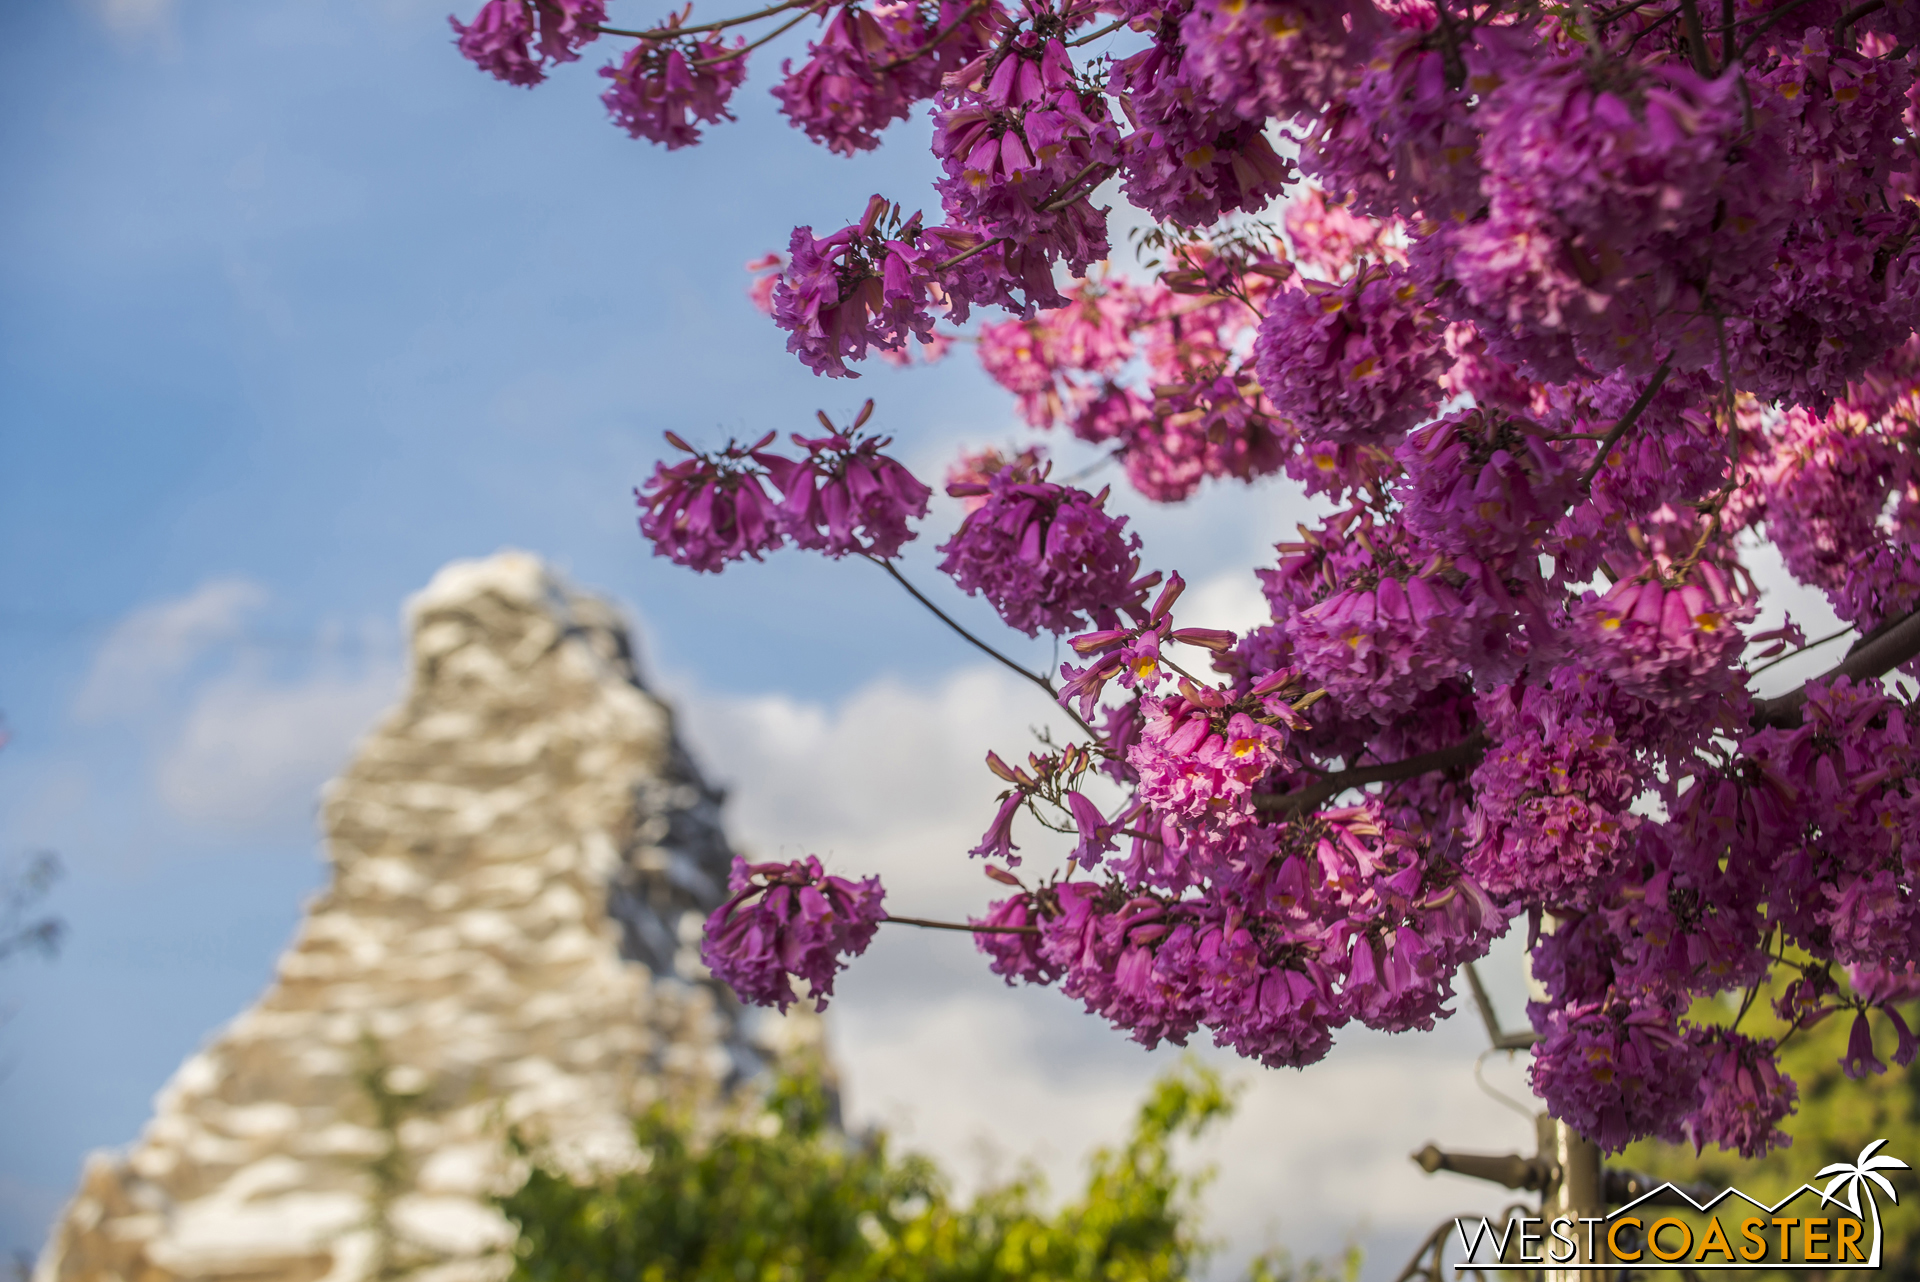 The tabebuia blooms were even and spectacularly vivid this year!